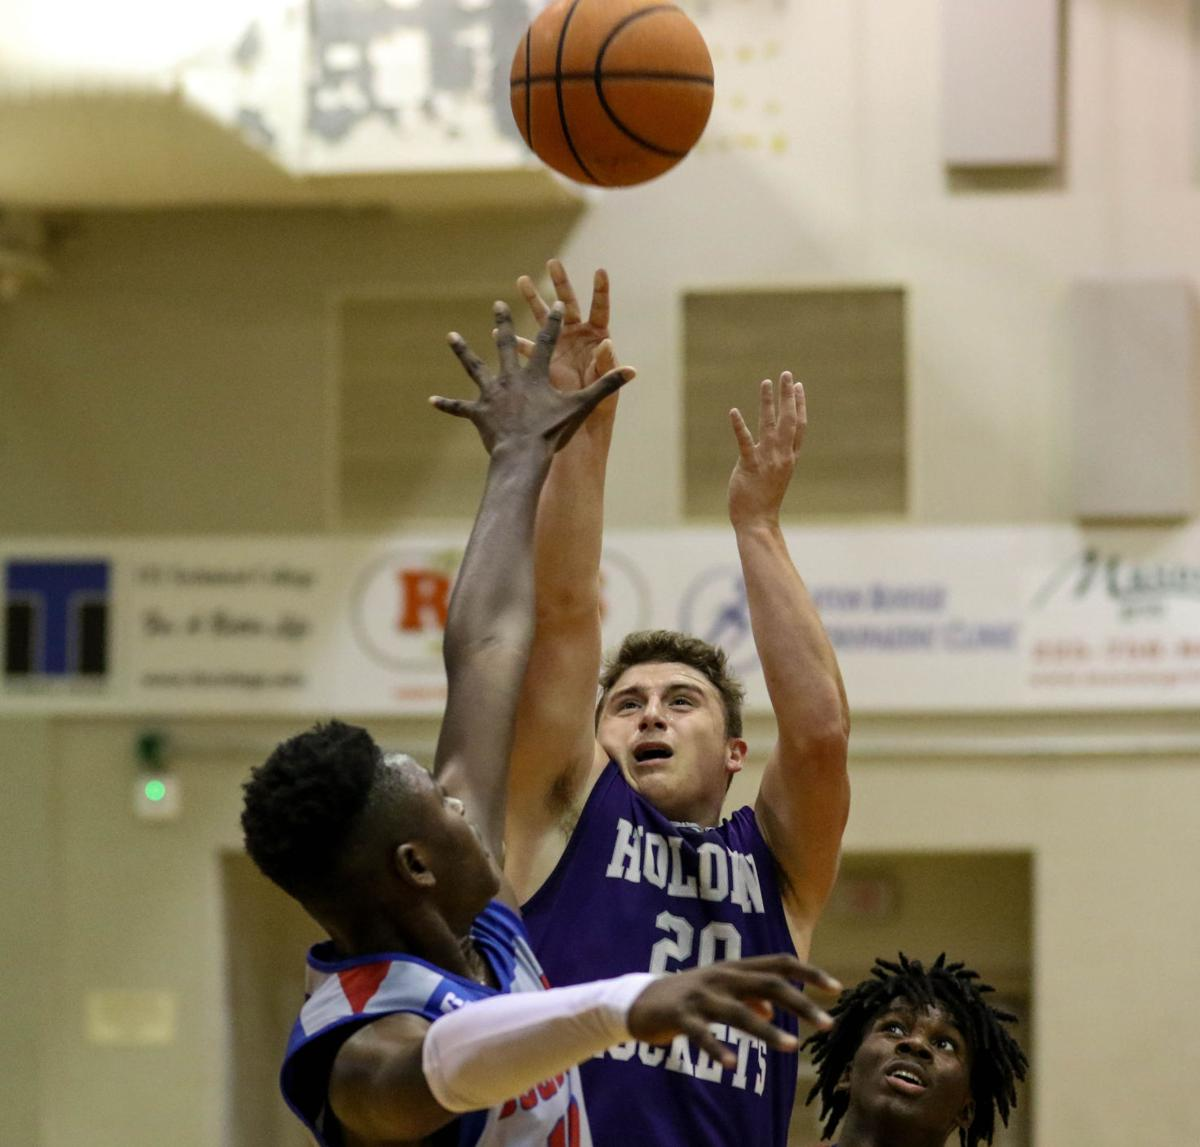 Holden-Sumner basketball John Sharp